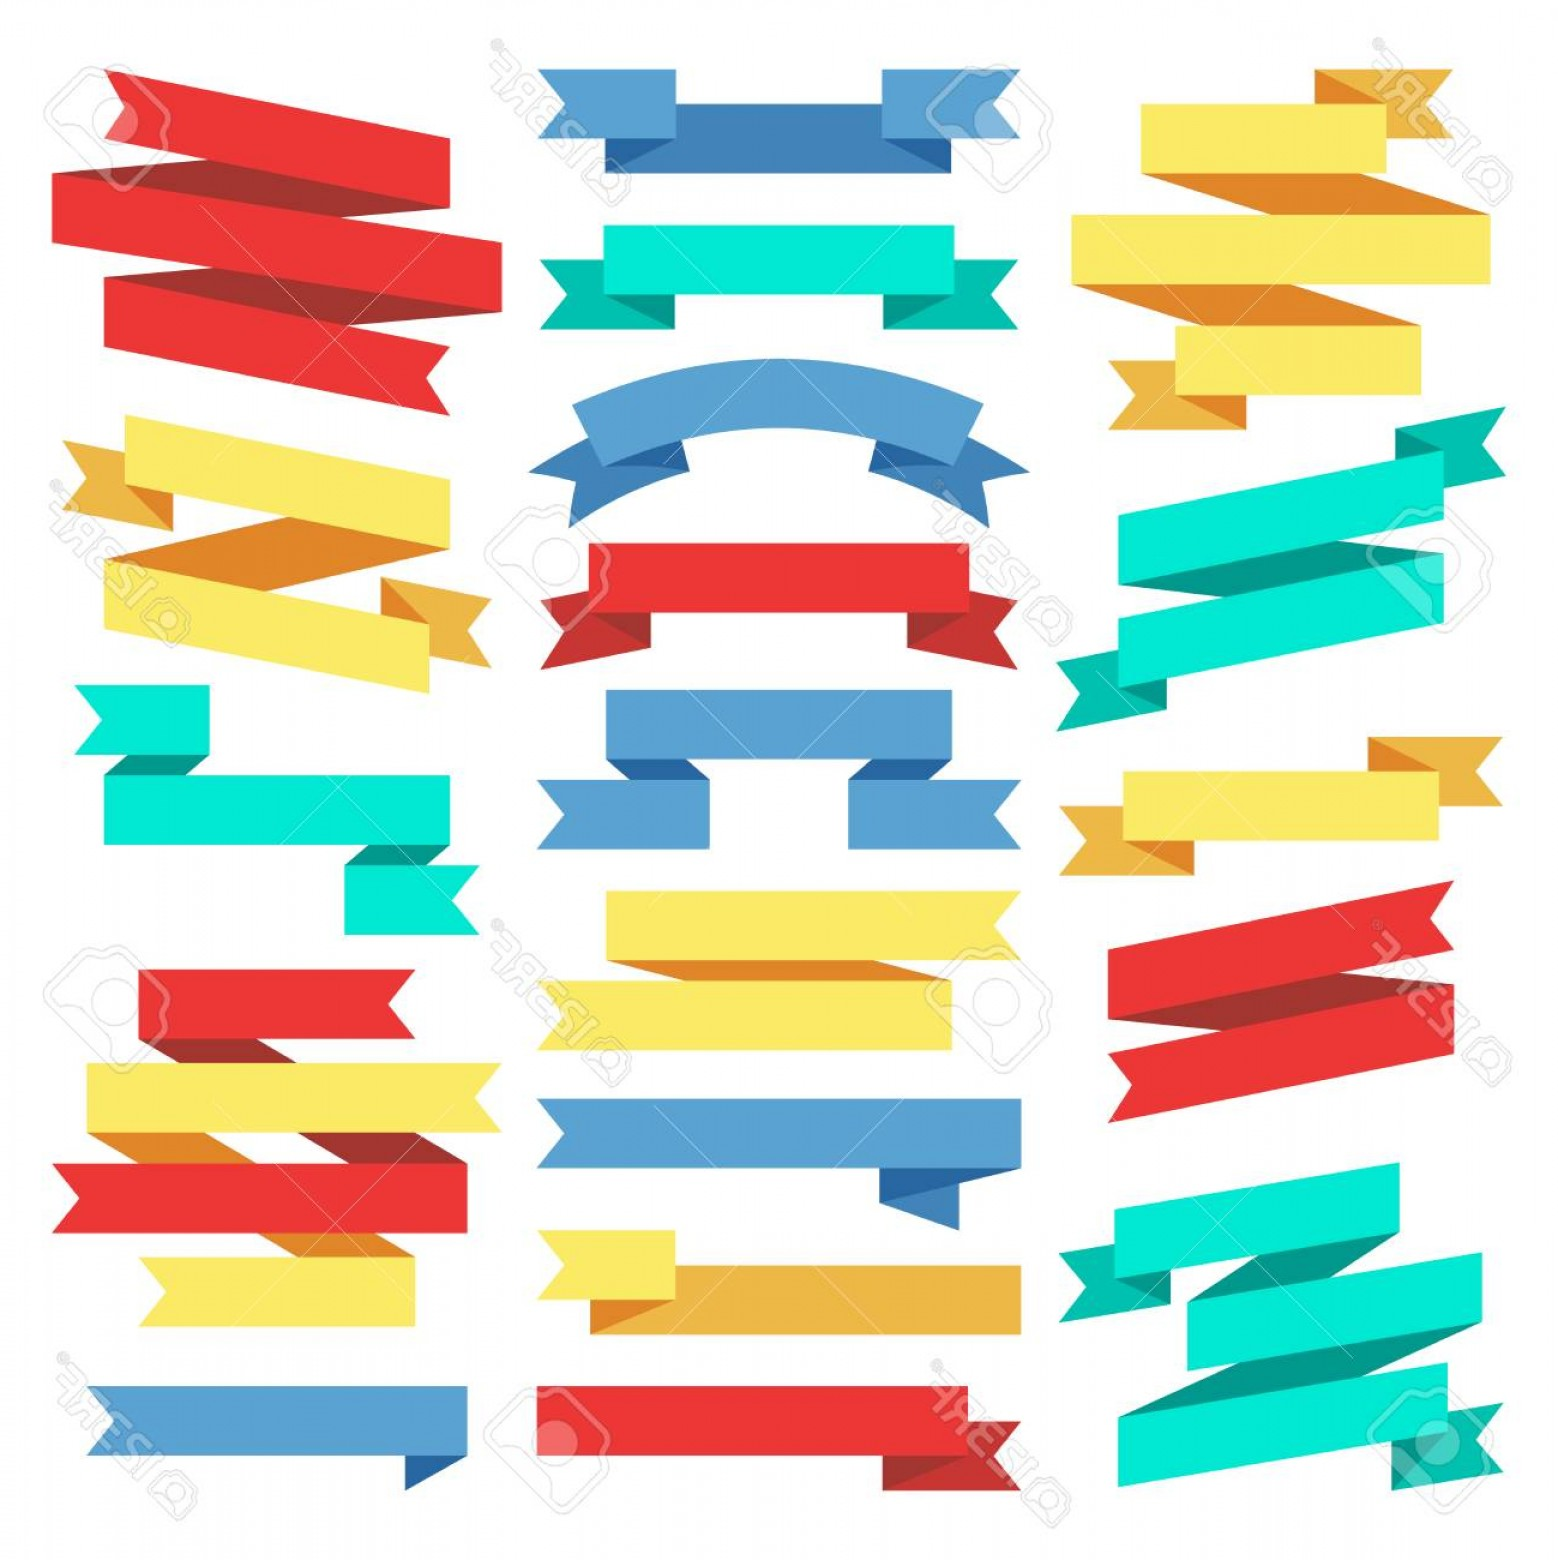 Ribbion Banner Vector: Photostock Vector Flat Banners Ribbons Web Stickers Stock Vector Ribbon Banner In Flat Style Illustration Element Colo